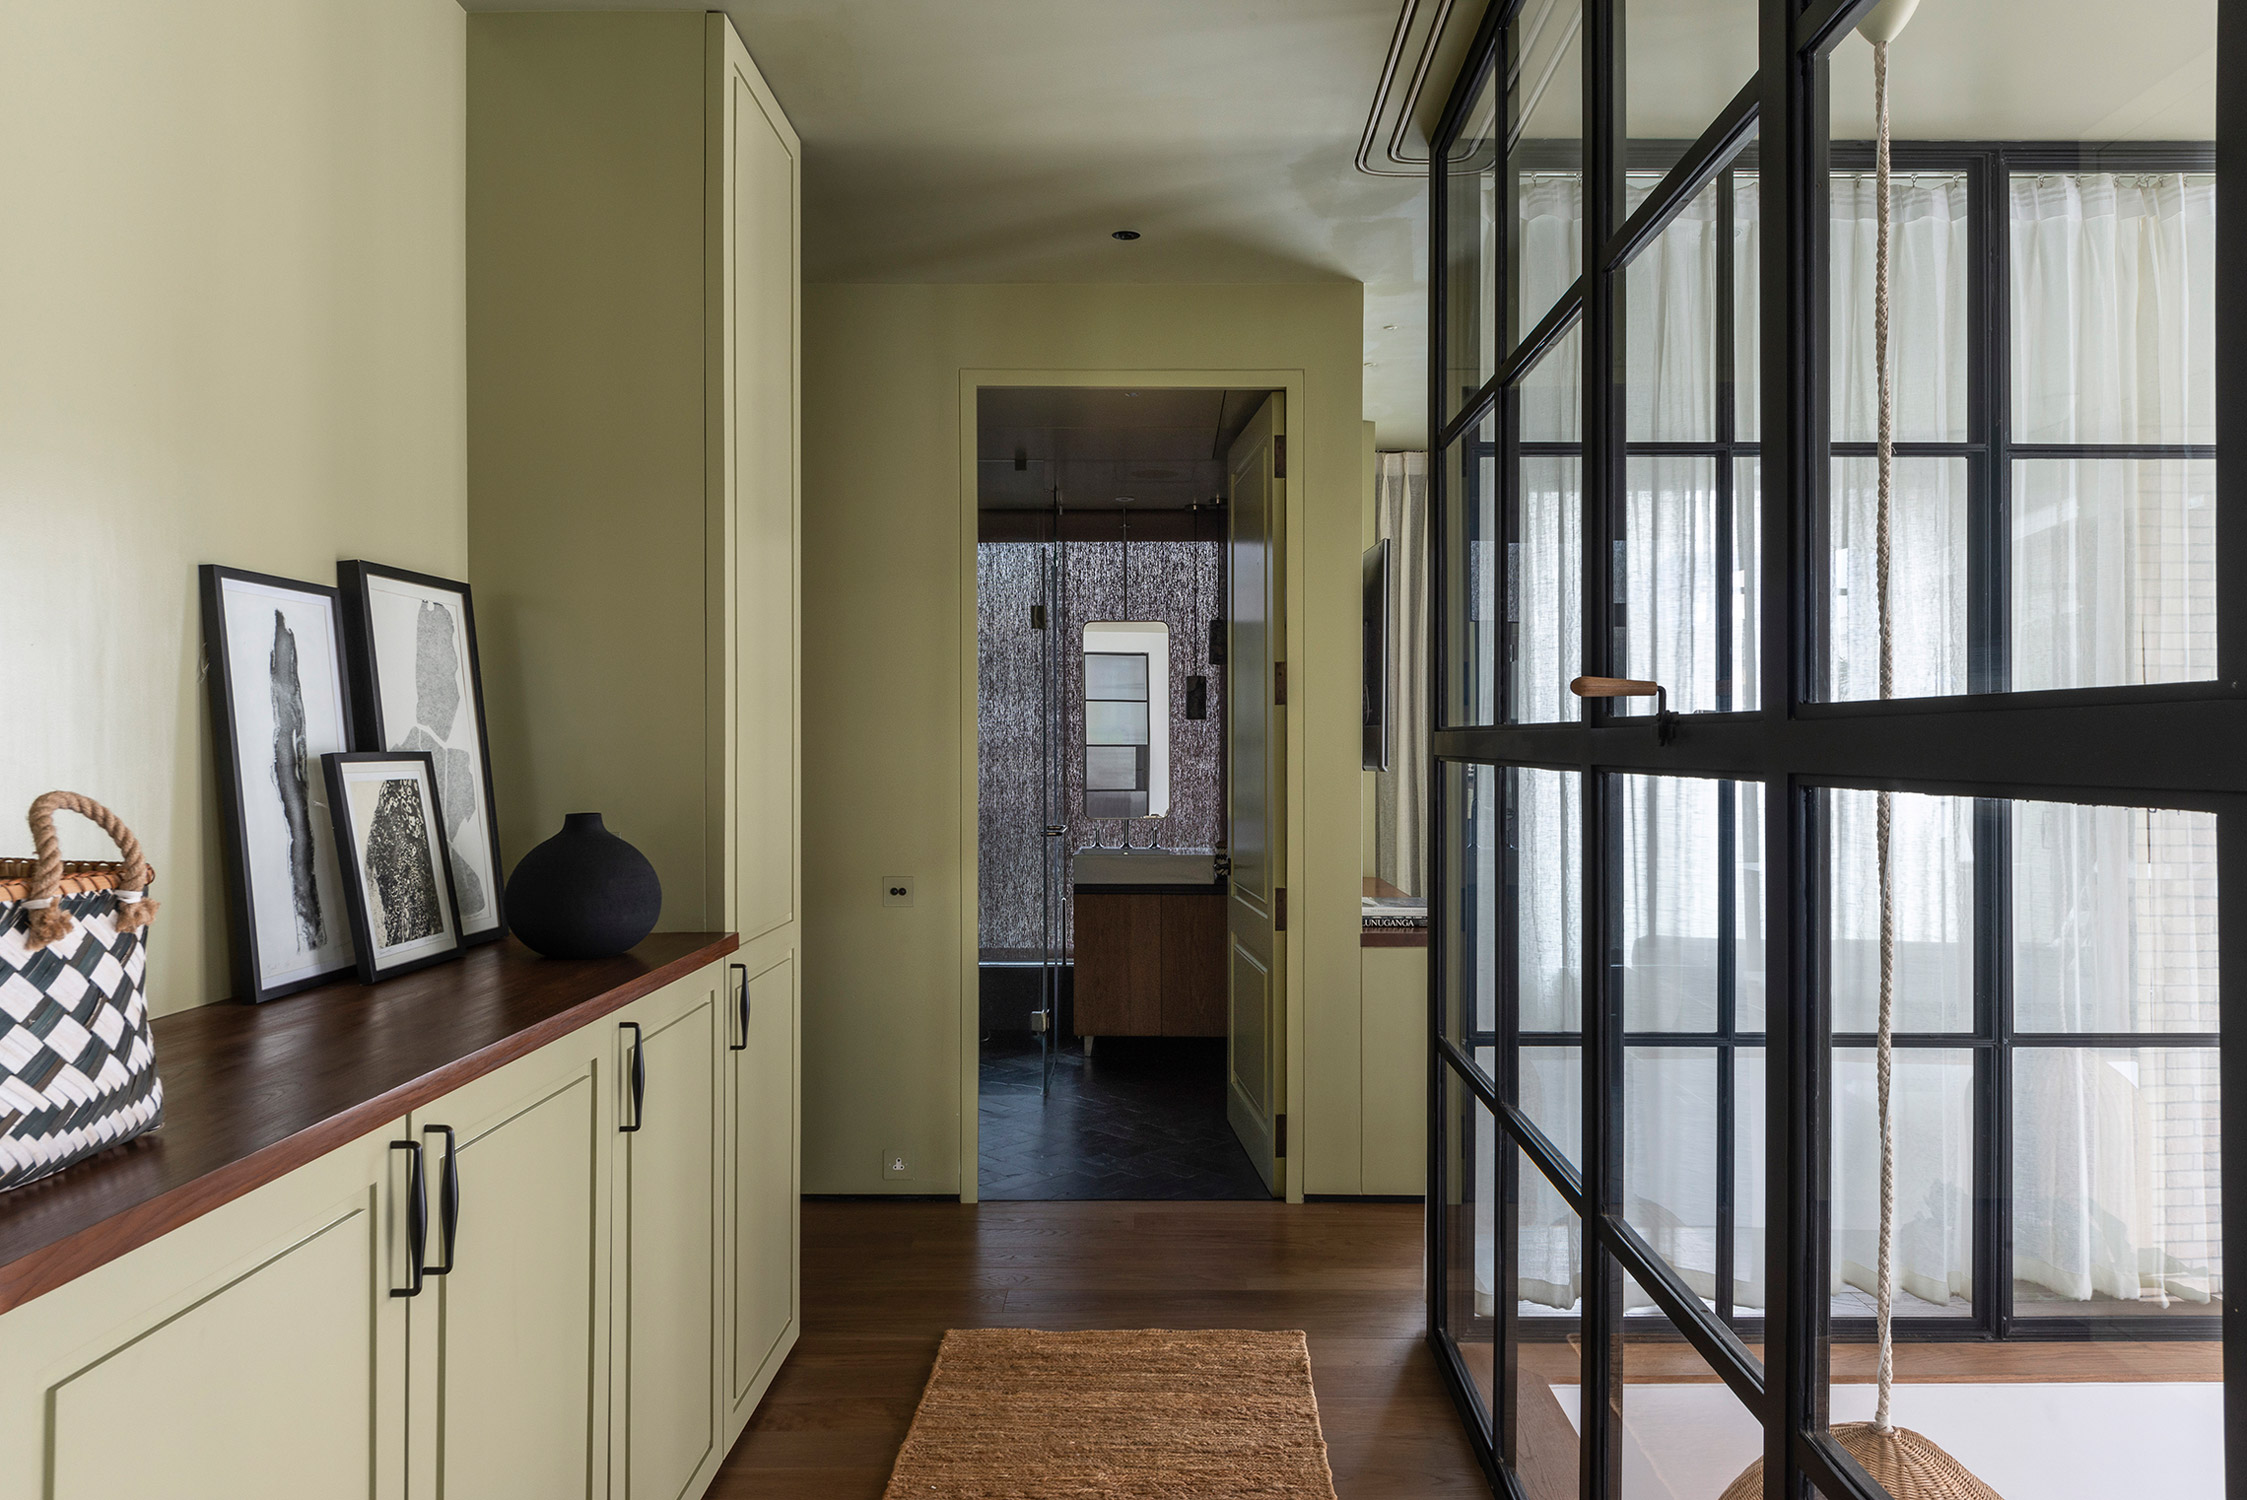 green storage cabinetry with steel windows